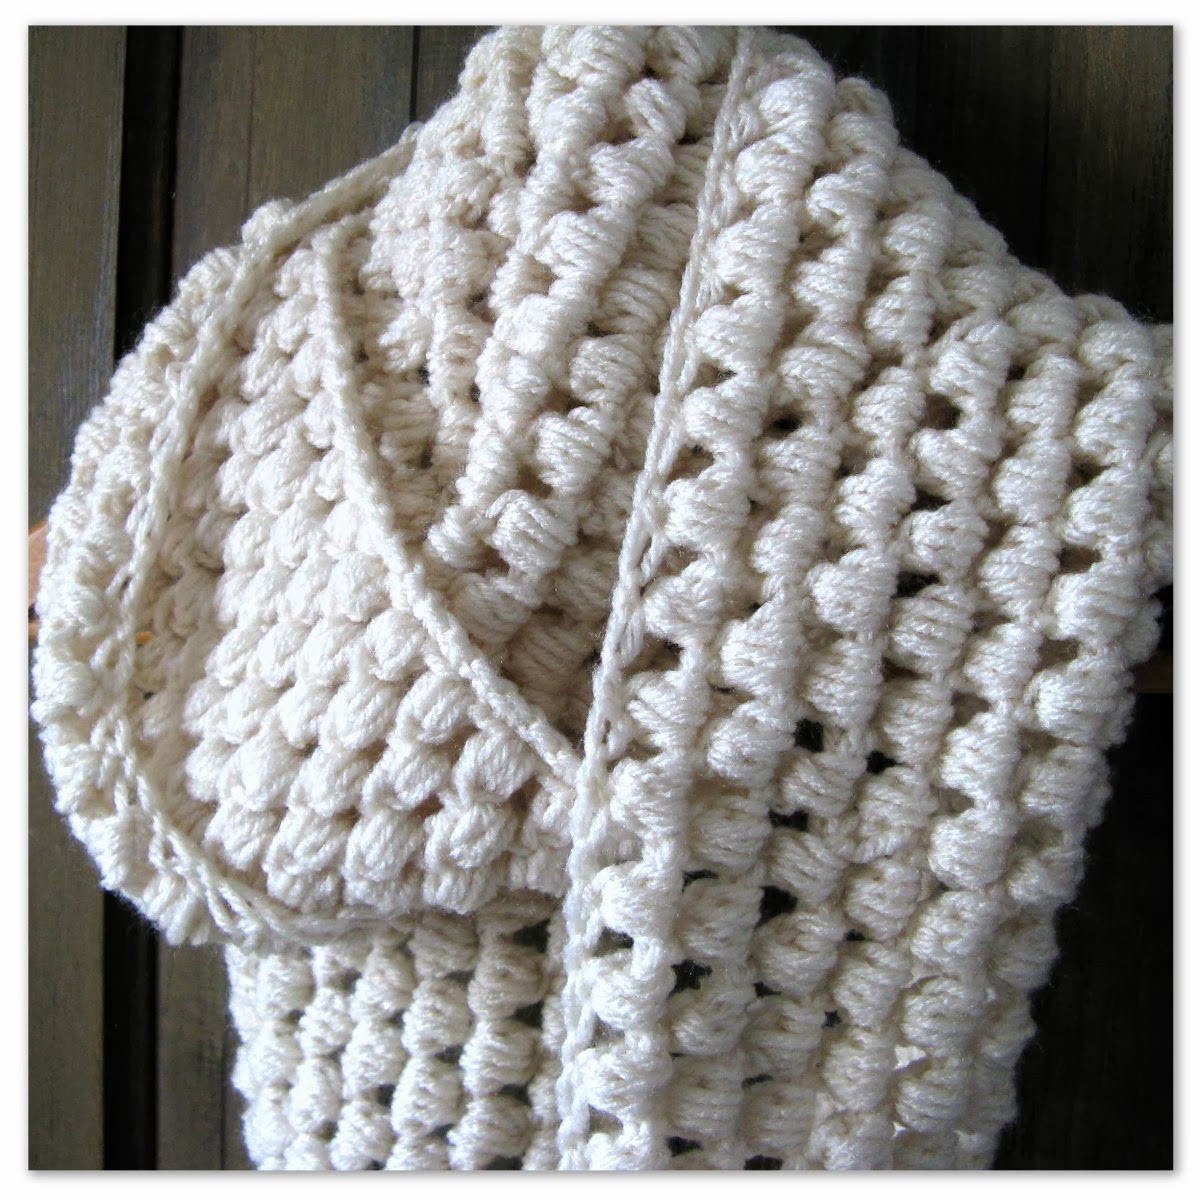 Best Of Happy as A Lark Crocheting A Puff Stitch Infinity Scarf Crochet Stitches for Scarves Of Gorgeous 48 Ideas Crochet Stitches for Scarves